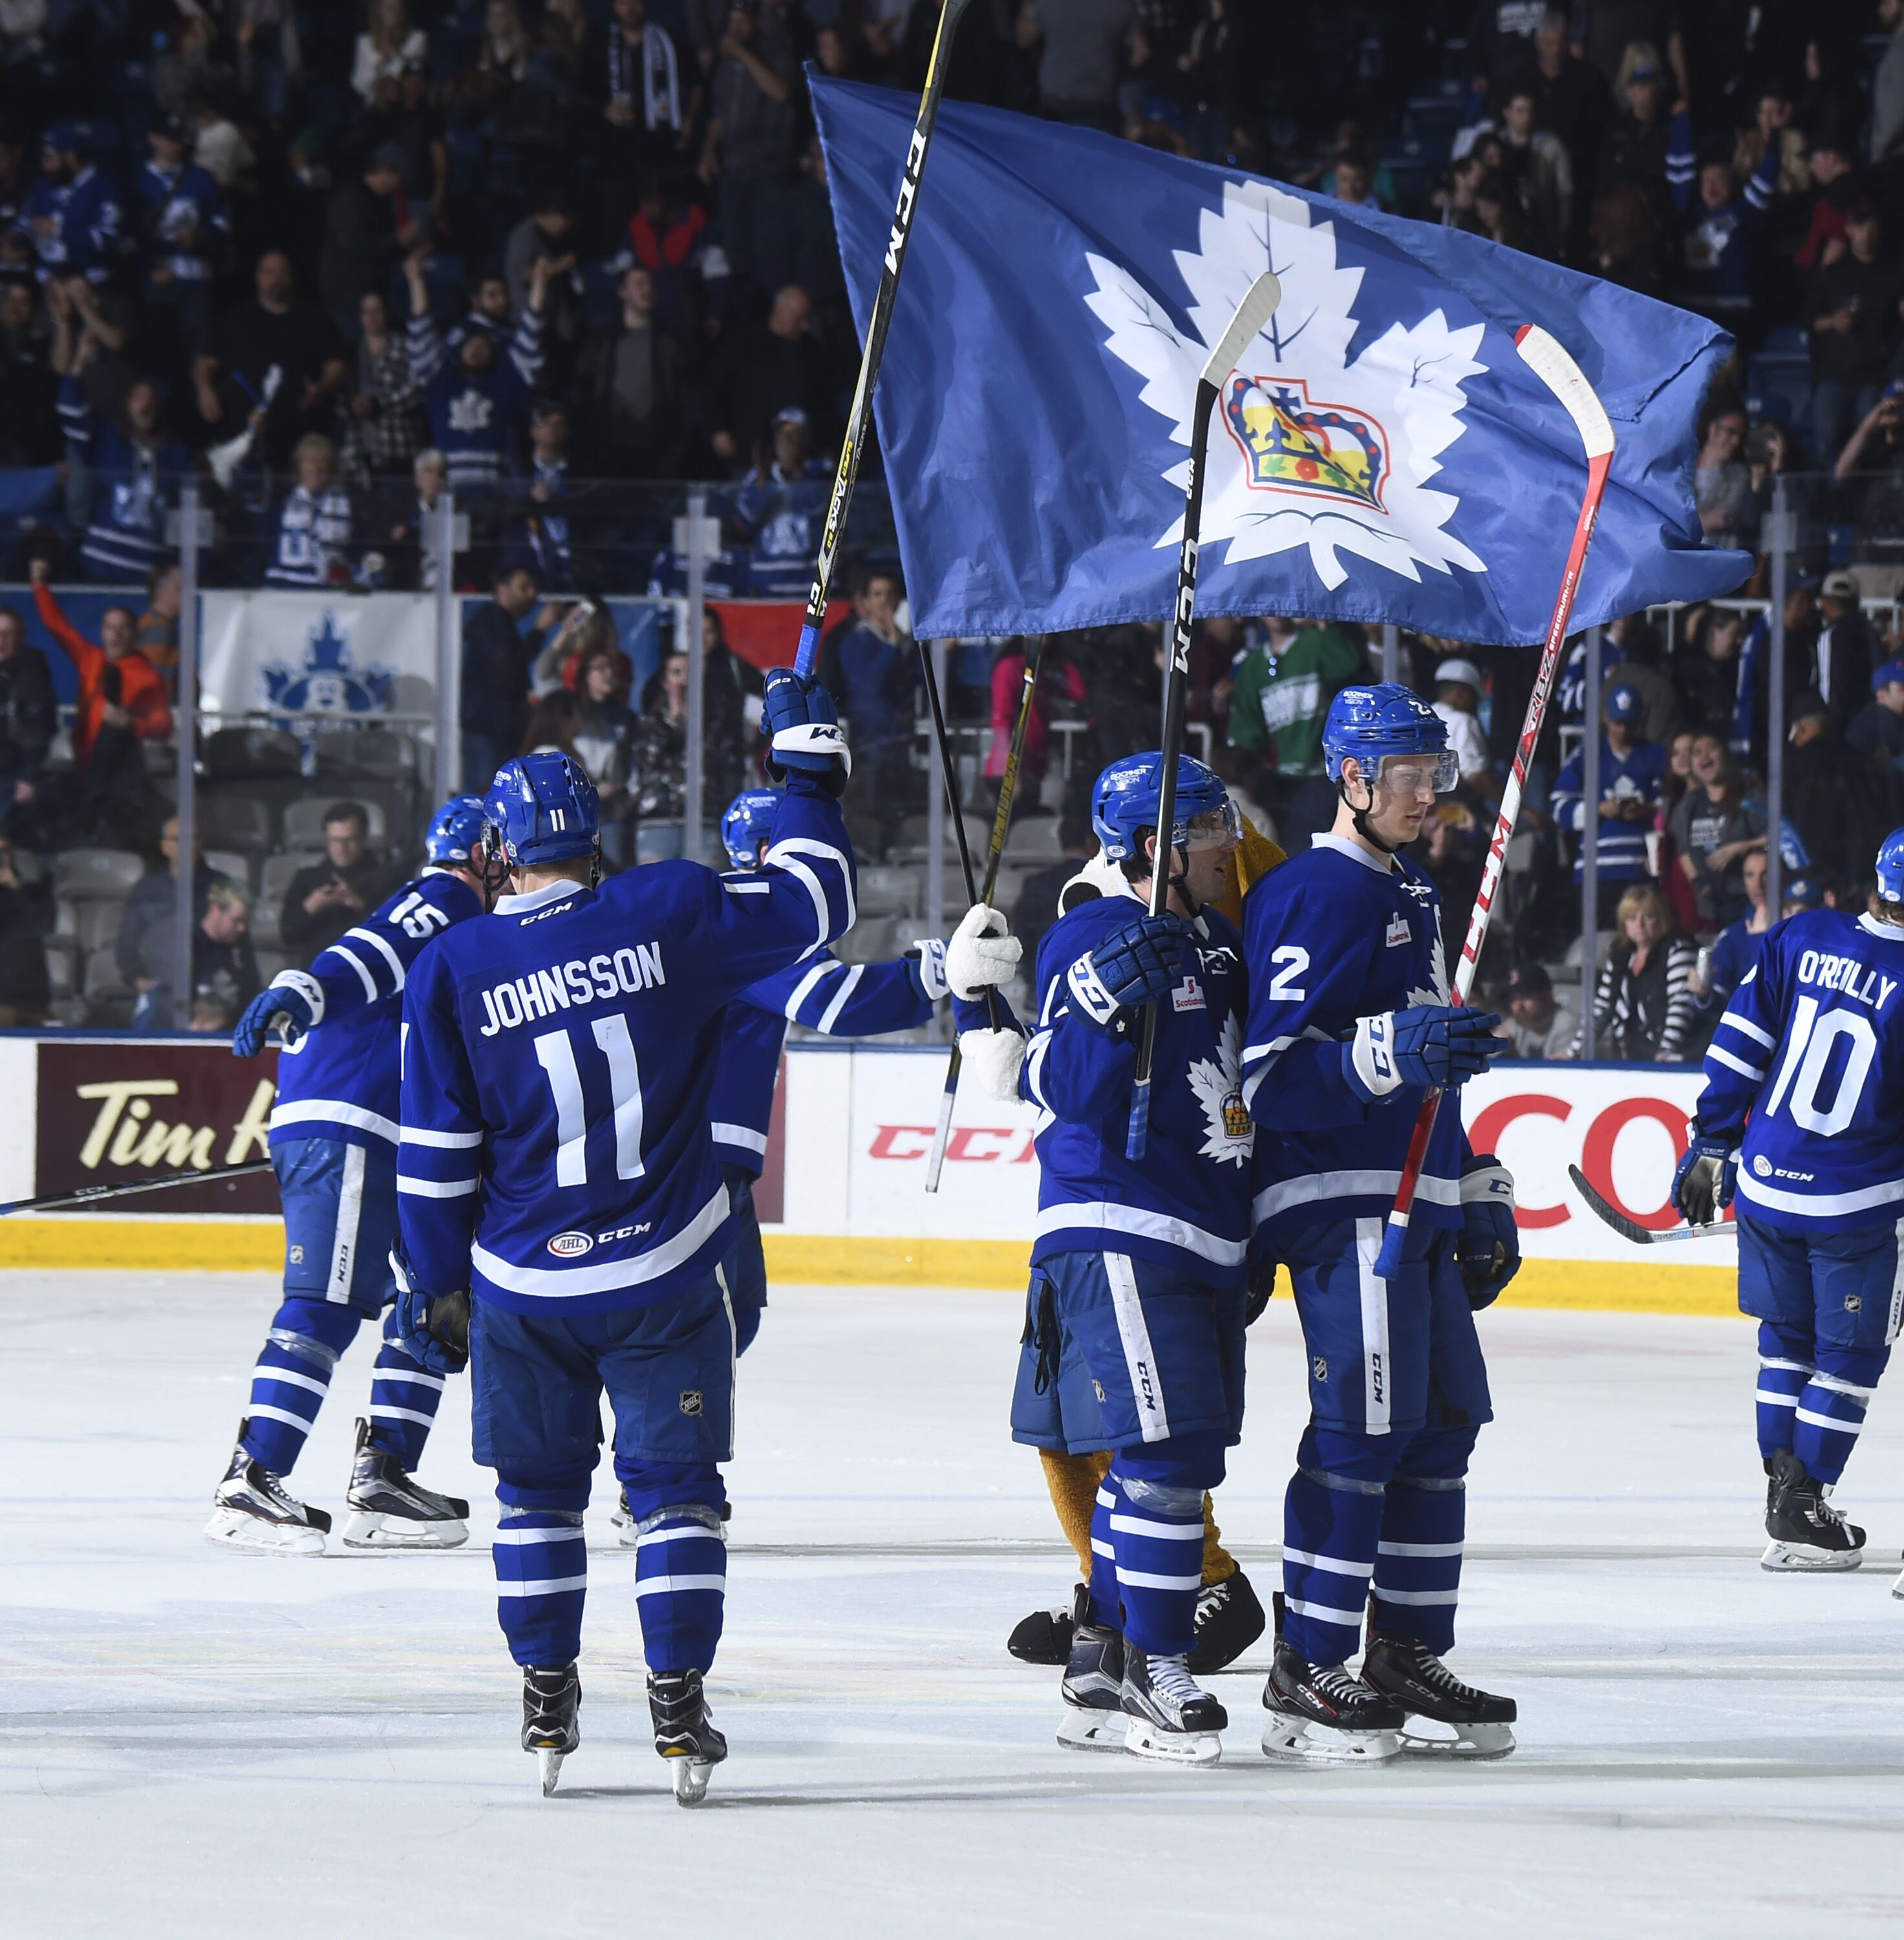 Toronto On May  The Toronto Marlies Celebrate Their Victory Over The Syracuse